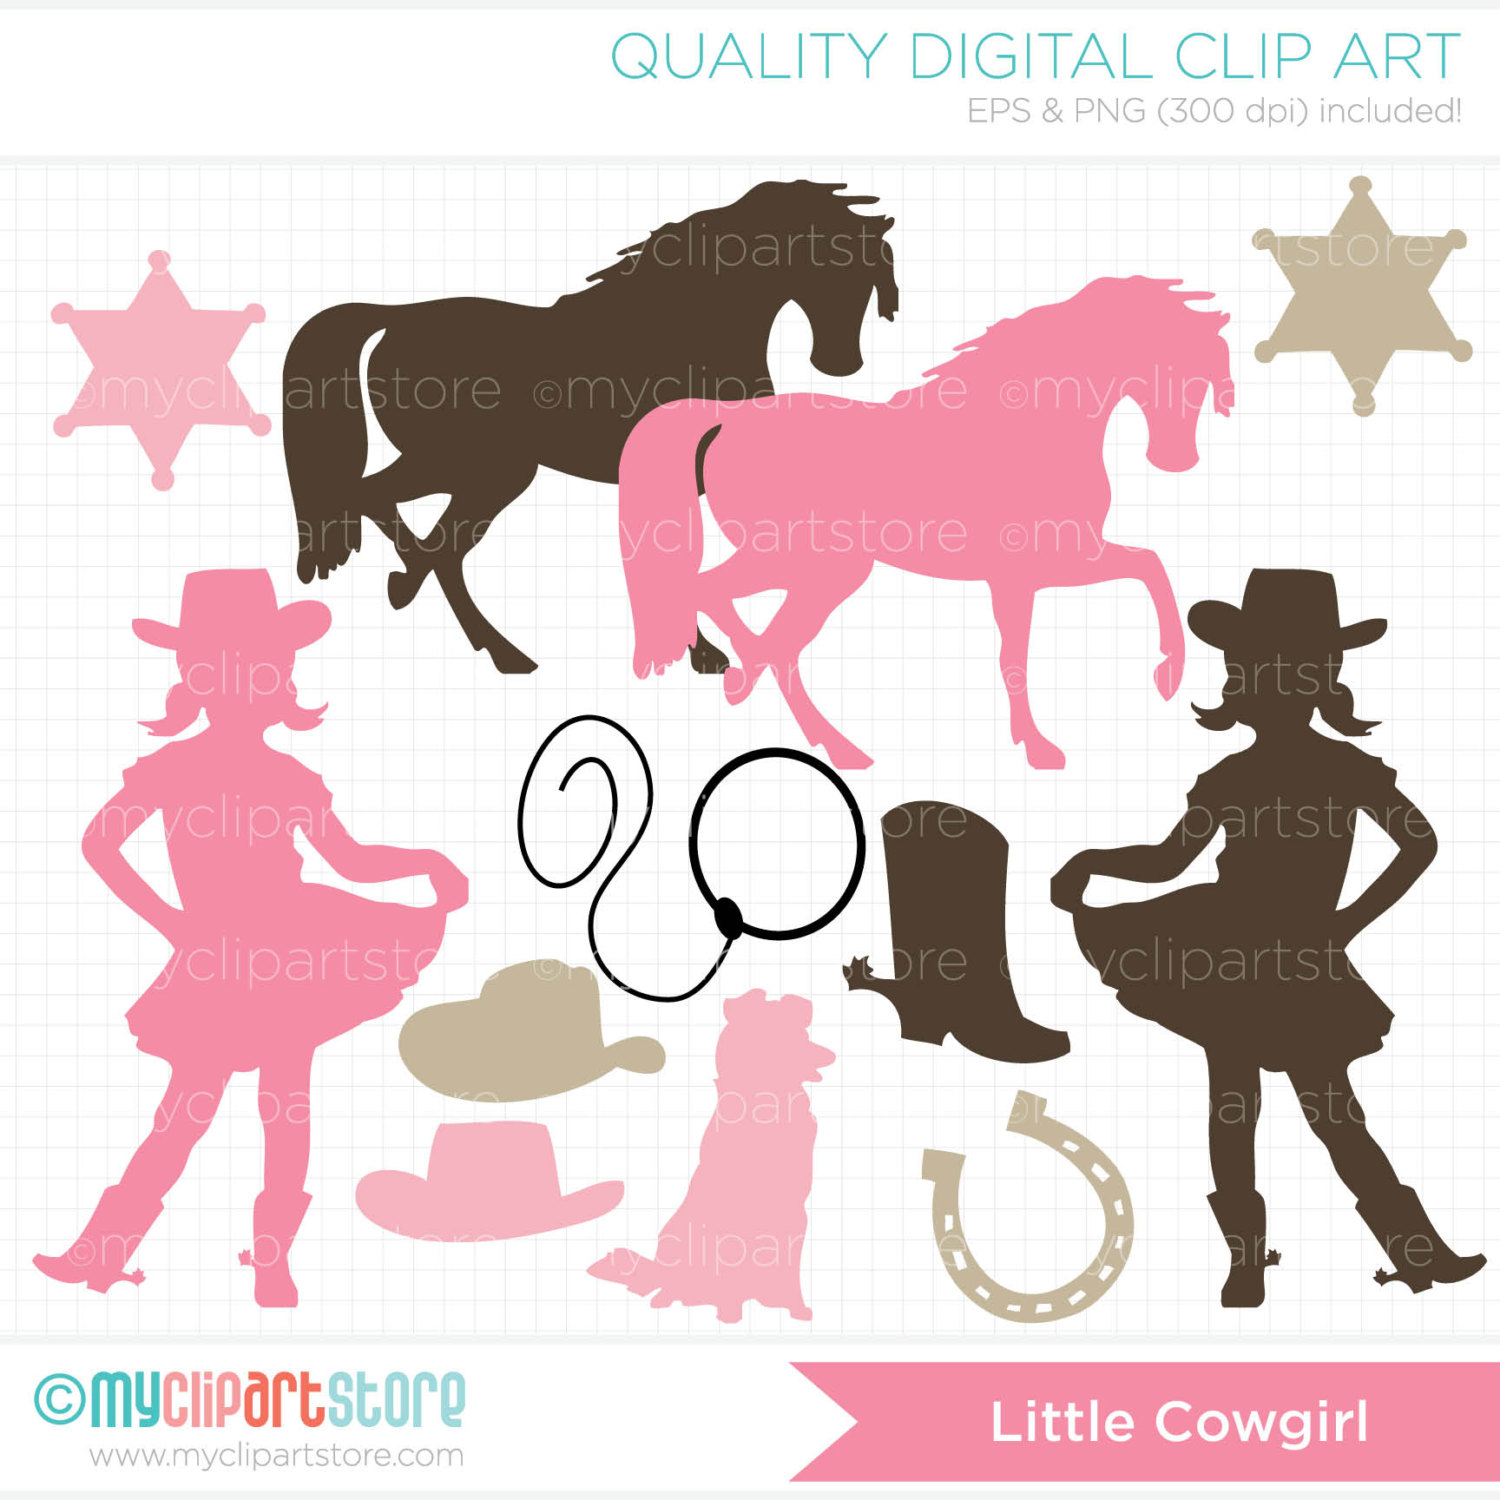 Cowgirl clipart little cowgirl Wild Etsy pink Silhouettes clipart